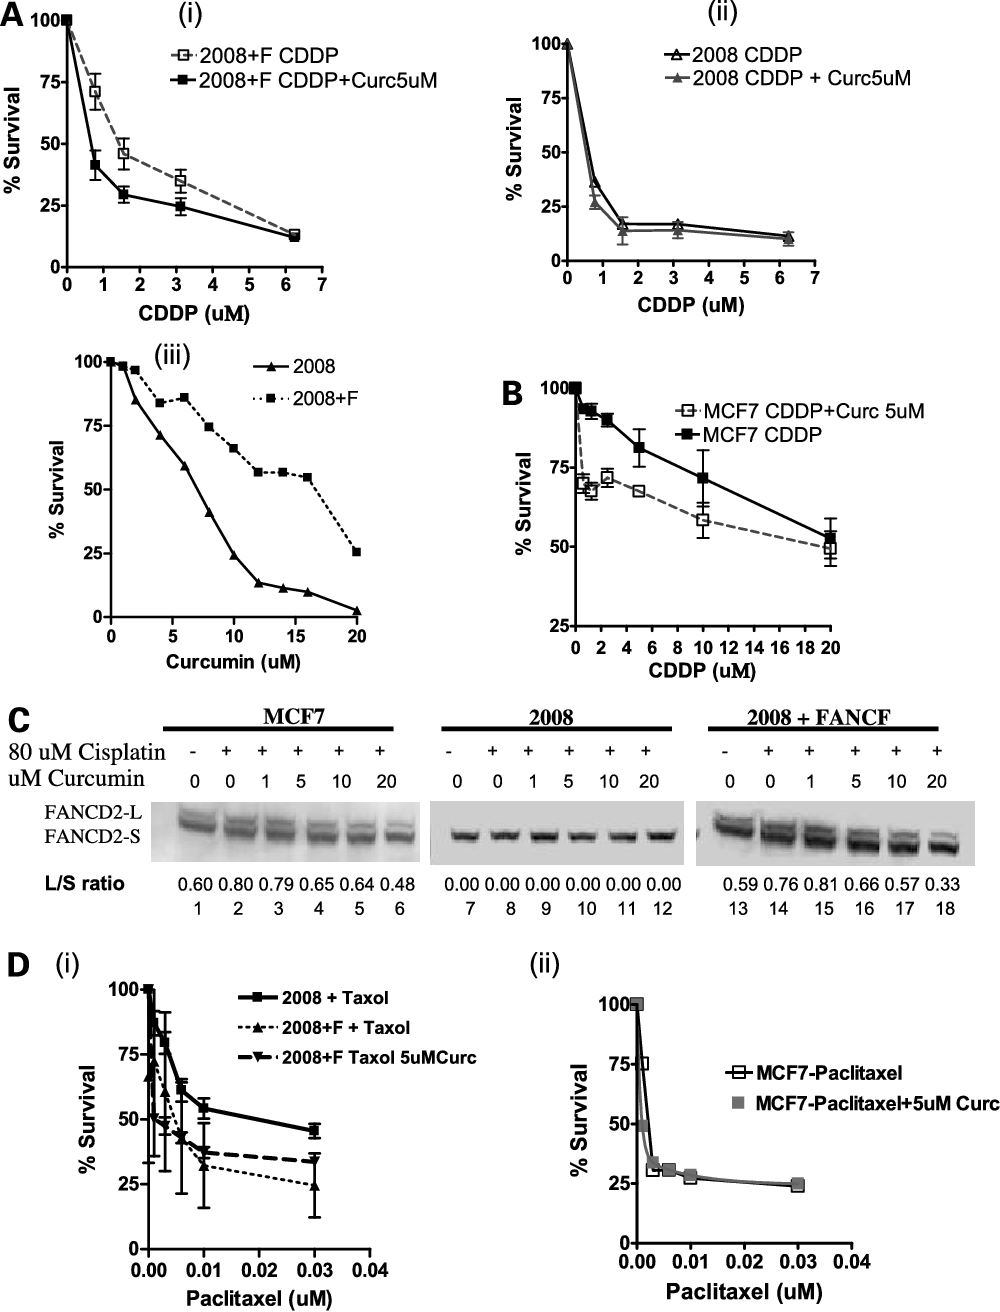 Figure 4. Curcumin chemosensitizes ovarian and breast tumor cell lines. A. i, curcumin sensitizes FAcompetent cells. ii, curcumin does not sensitize FA-affected cells. iii, curcumin dose-response curves for the isogenic pair of FA cells, 2008, and FA-corrected cells, 2008 + FANCF. Dose-inhibition studies evaluating cisplatin response in the 2008 and 2008 + FANCF cell lines with the addition of 5 Amol/L curcumin. 2008 + FANCF (5), 2008 + FANCF with curcumin (n), 2008 (E), and 2008 + curcumin (4). Representative of three independent experiments. Points, percentage survival; bars, SE. B, curcumin sensitizes breast cancer cells. Dose-inhibition studies of MCF7, with 5 Amol/L curcumin. n, MCF7; 5, MCF7 with curcumin. Representative of three independent experiments. Points, percentage survival; bars, SE. C, Western blot confirming the inhibition of FANCD2 monoubiquitination by curcumin in MCF7 and 2008 + FANCF cell lines. The 2008 cells do not monoubiquitinate FANCD2. Lanes 1, 7 , and 13, untreated cells; lanes 2, 8, and 14, cells treated with 80 Amol/L cisplatin for 24 h; lanes 3 to 6, 9 to 12, 15 to 18, cells treated with 80 Amol/L cisplatin and increasing doses of curcumin (1, 5, 10, and 20 Amol/L) for 24 h.D, curcumin does not synergize with paclitaxel. Dose-inhibition studies evaluating paclitaxel response alone in the (i) 2008 and 2008 + FANCF cell lines and 2008 + FANCF with paclitaxel and 5 Amol/L curcumin, (ii) MCF7 cell lines with paclitaxel alone and the addition of 5 Amol/L curcumin. Representative of three independent experiments. Points, percentage survival; bars, SE.